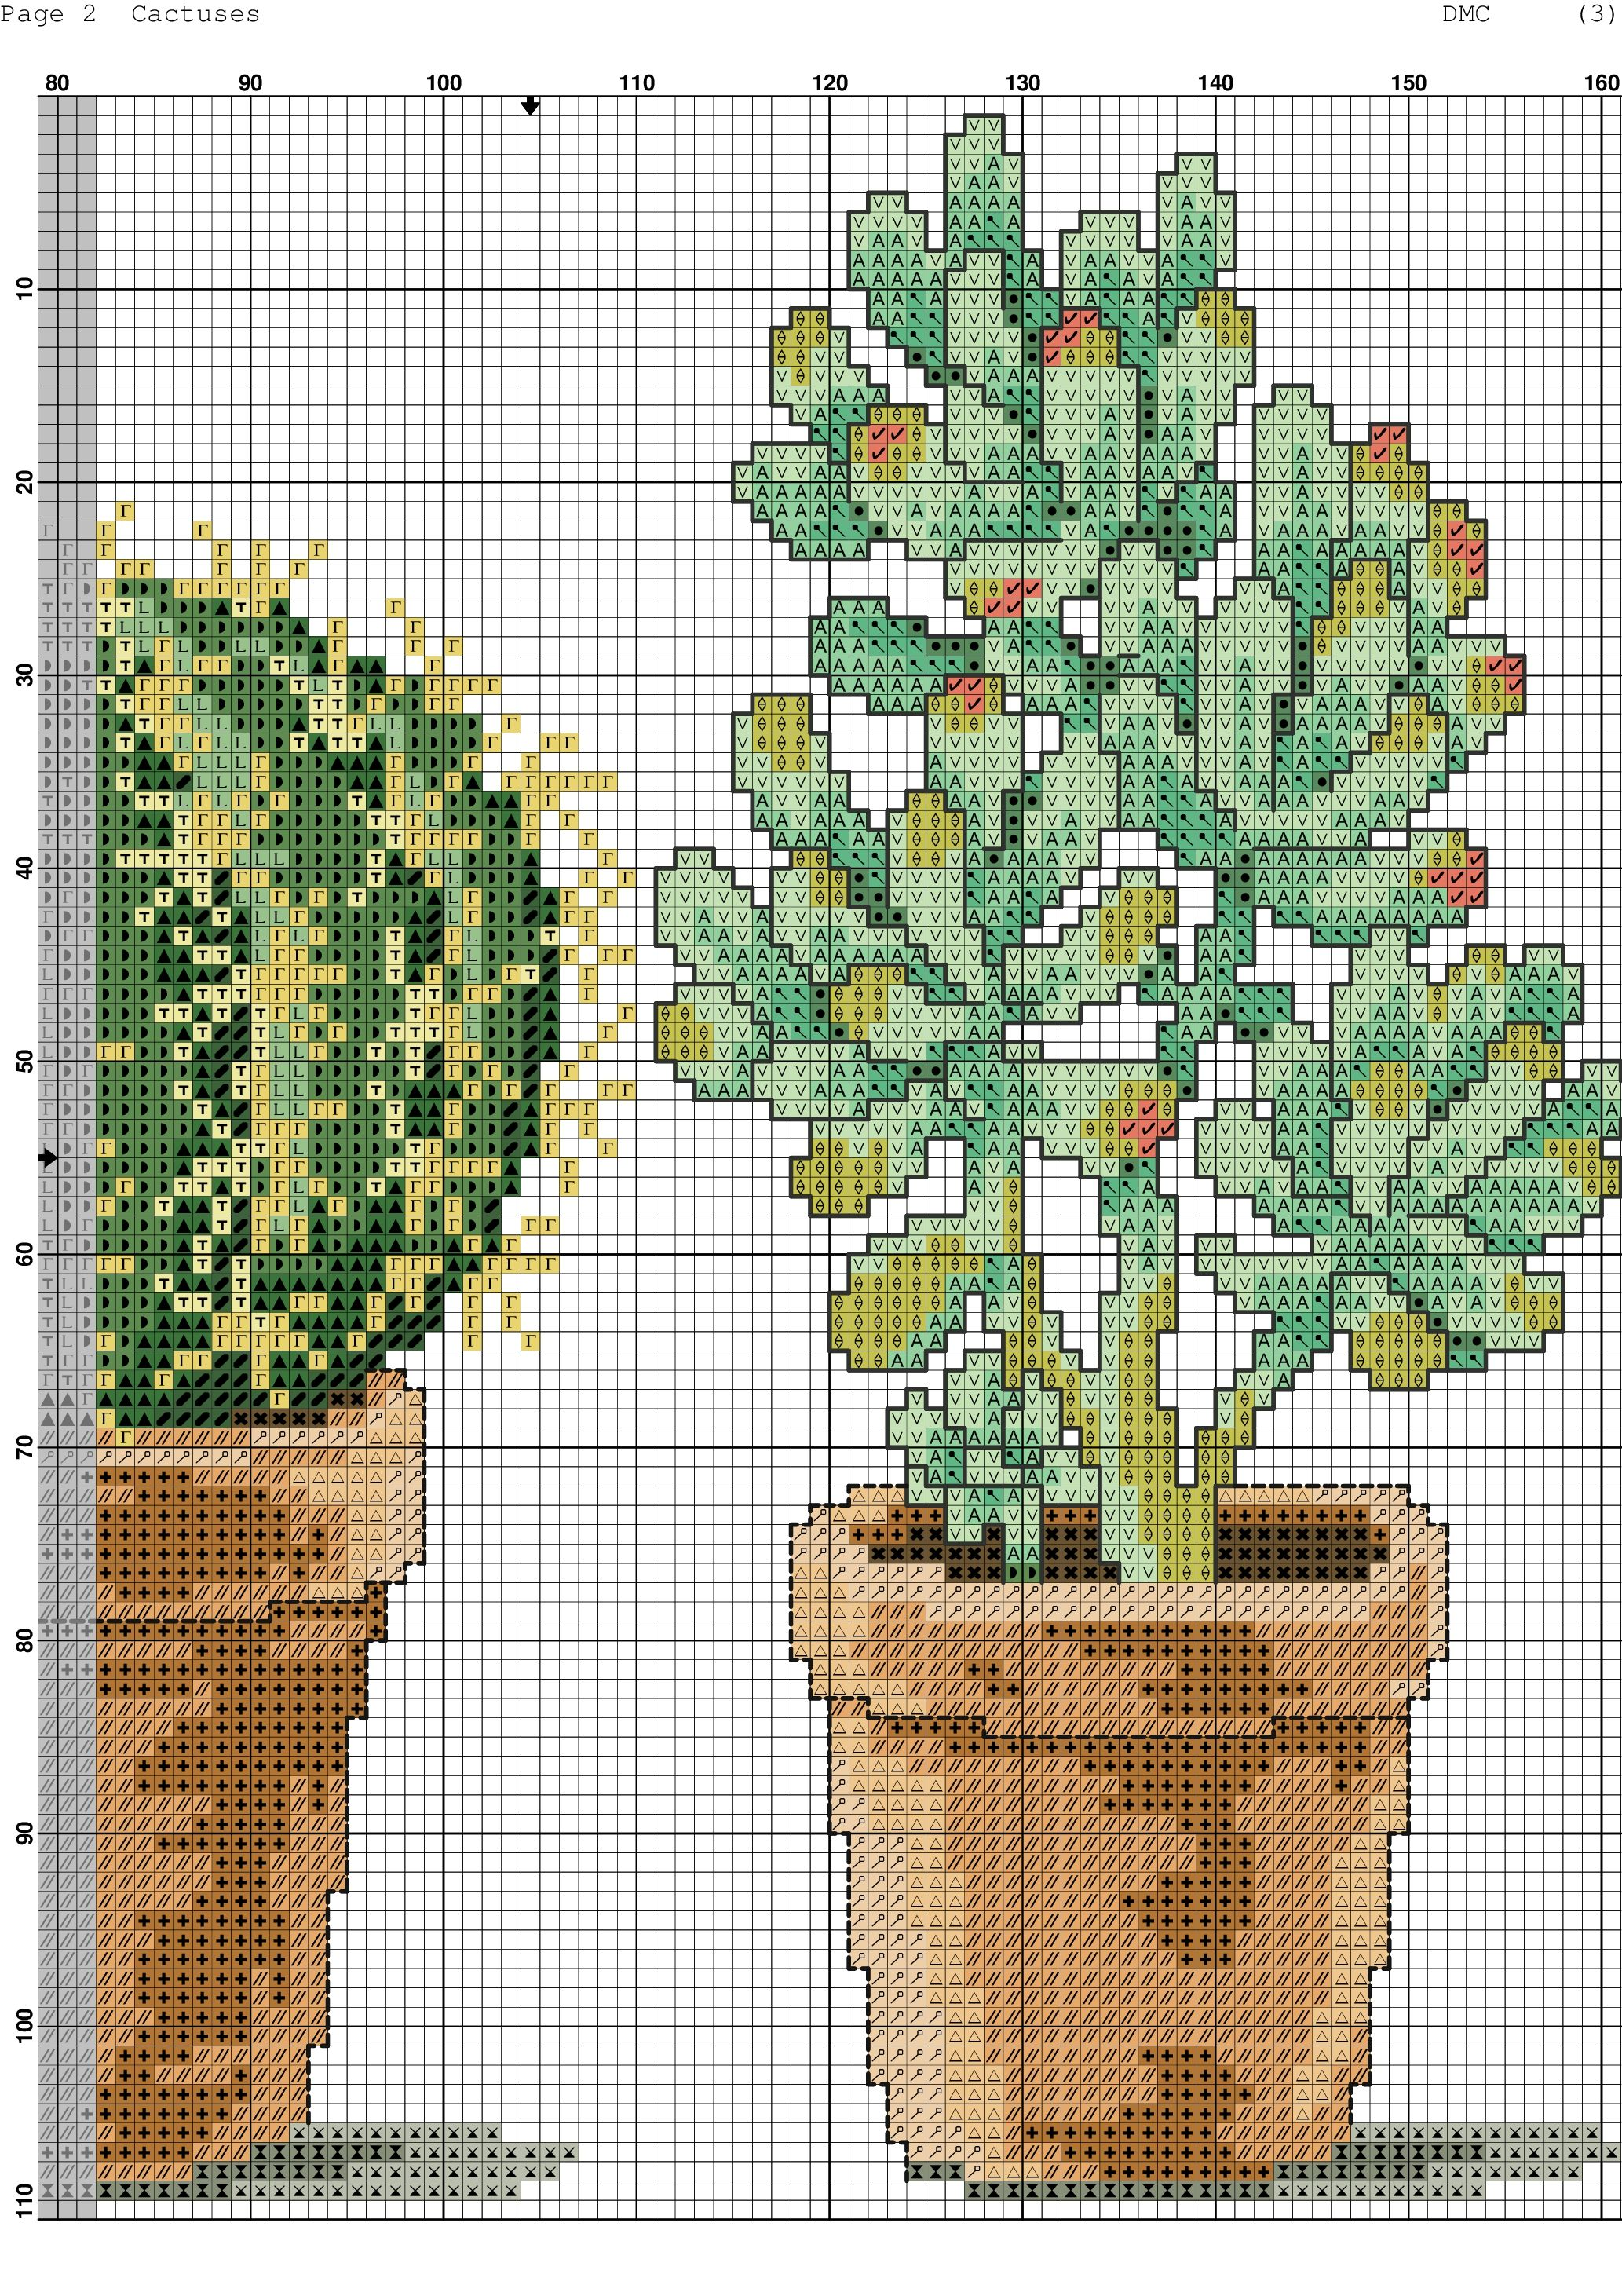 Cactuses 2